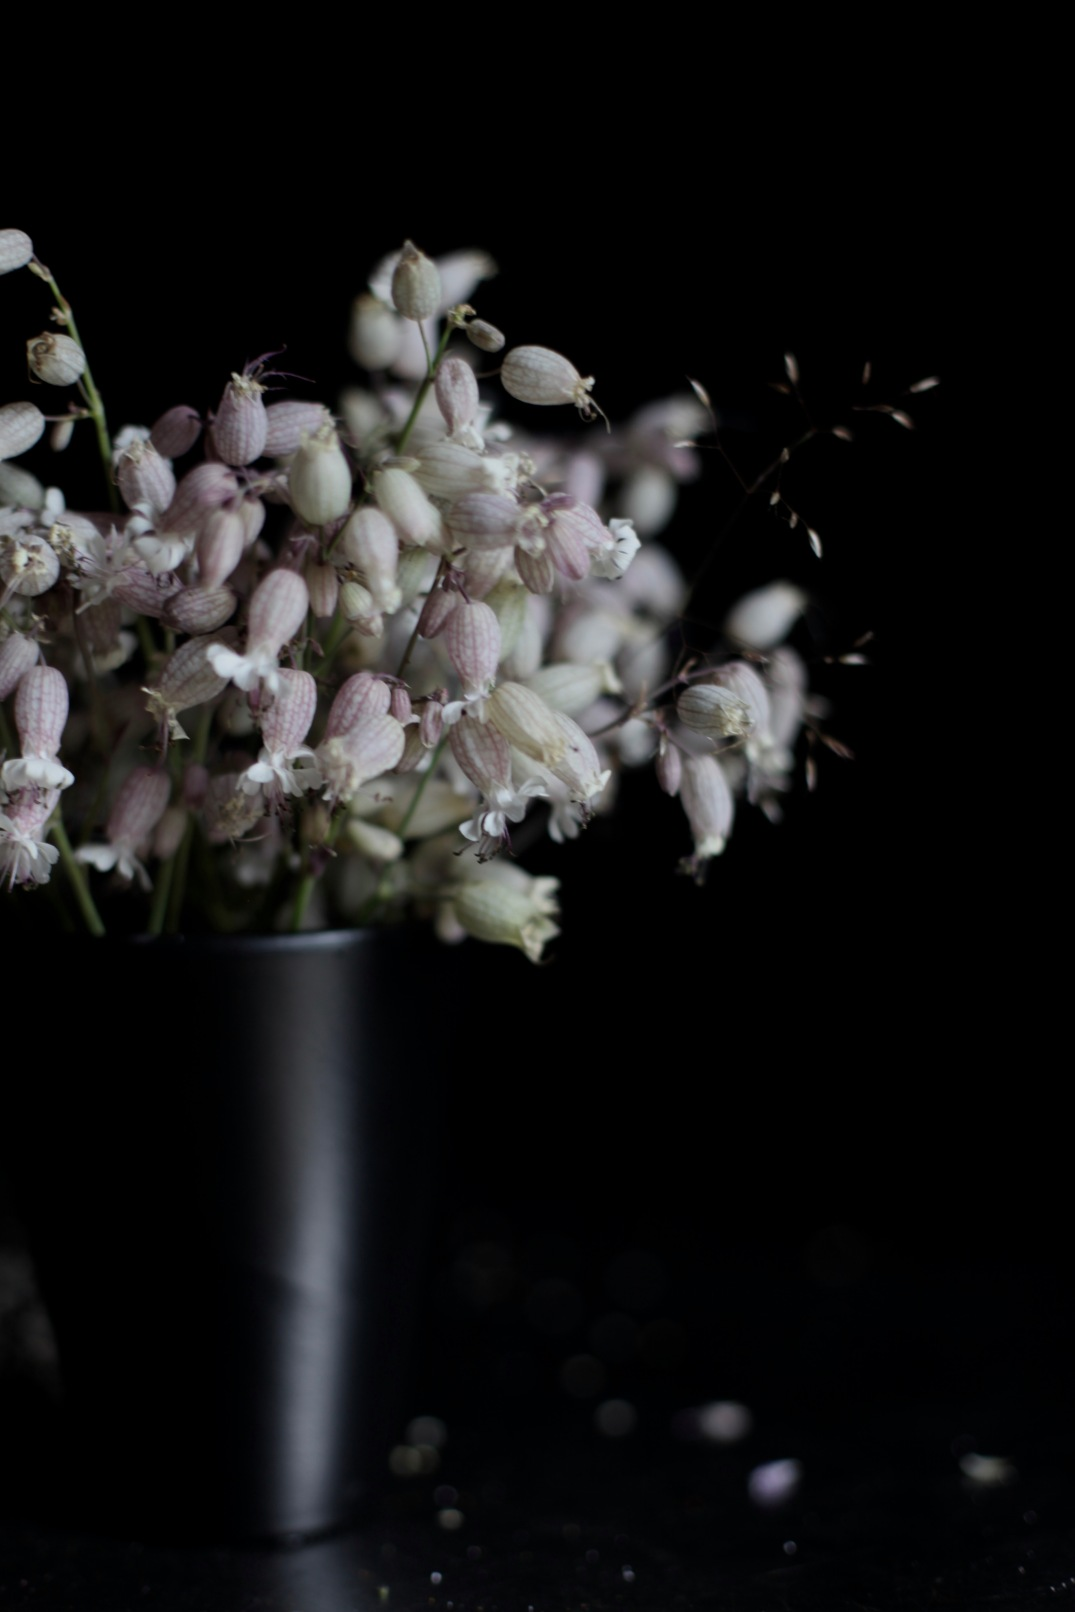 moody floral photography, back vase with Silene, foraged in Denmark